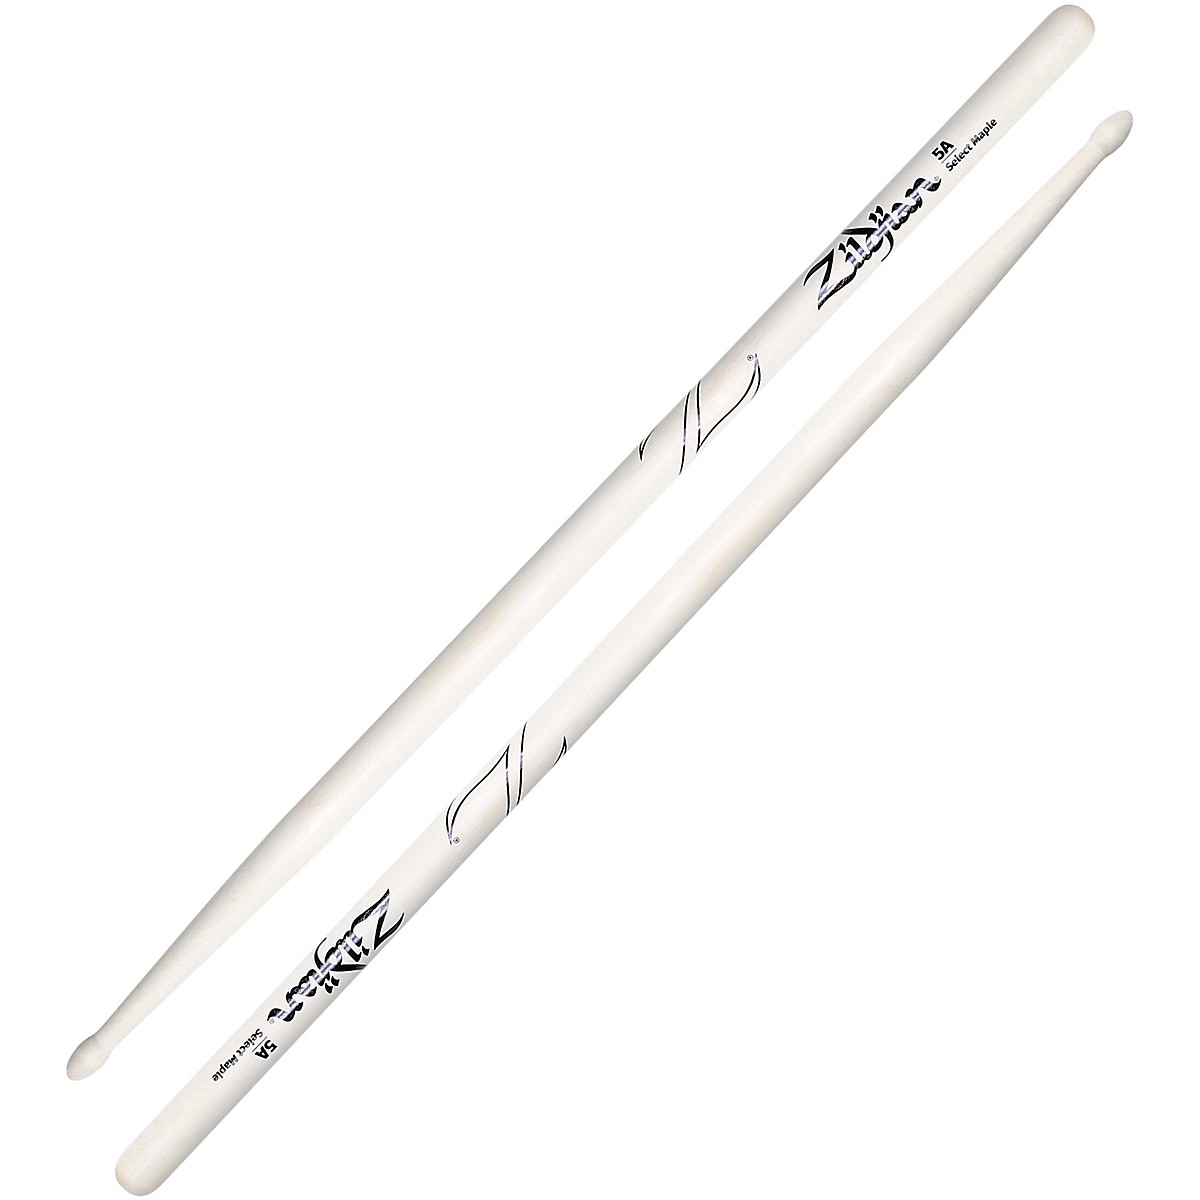 Zildjian Maple Drum Sticks